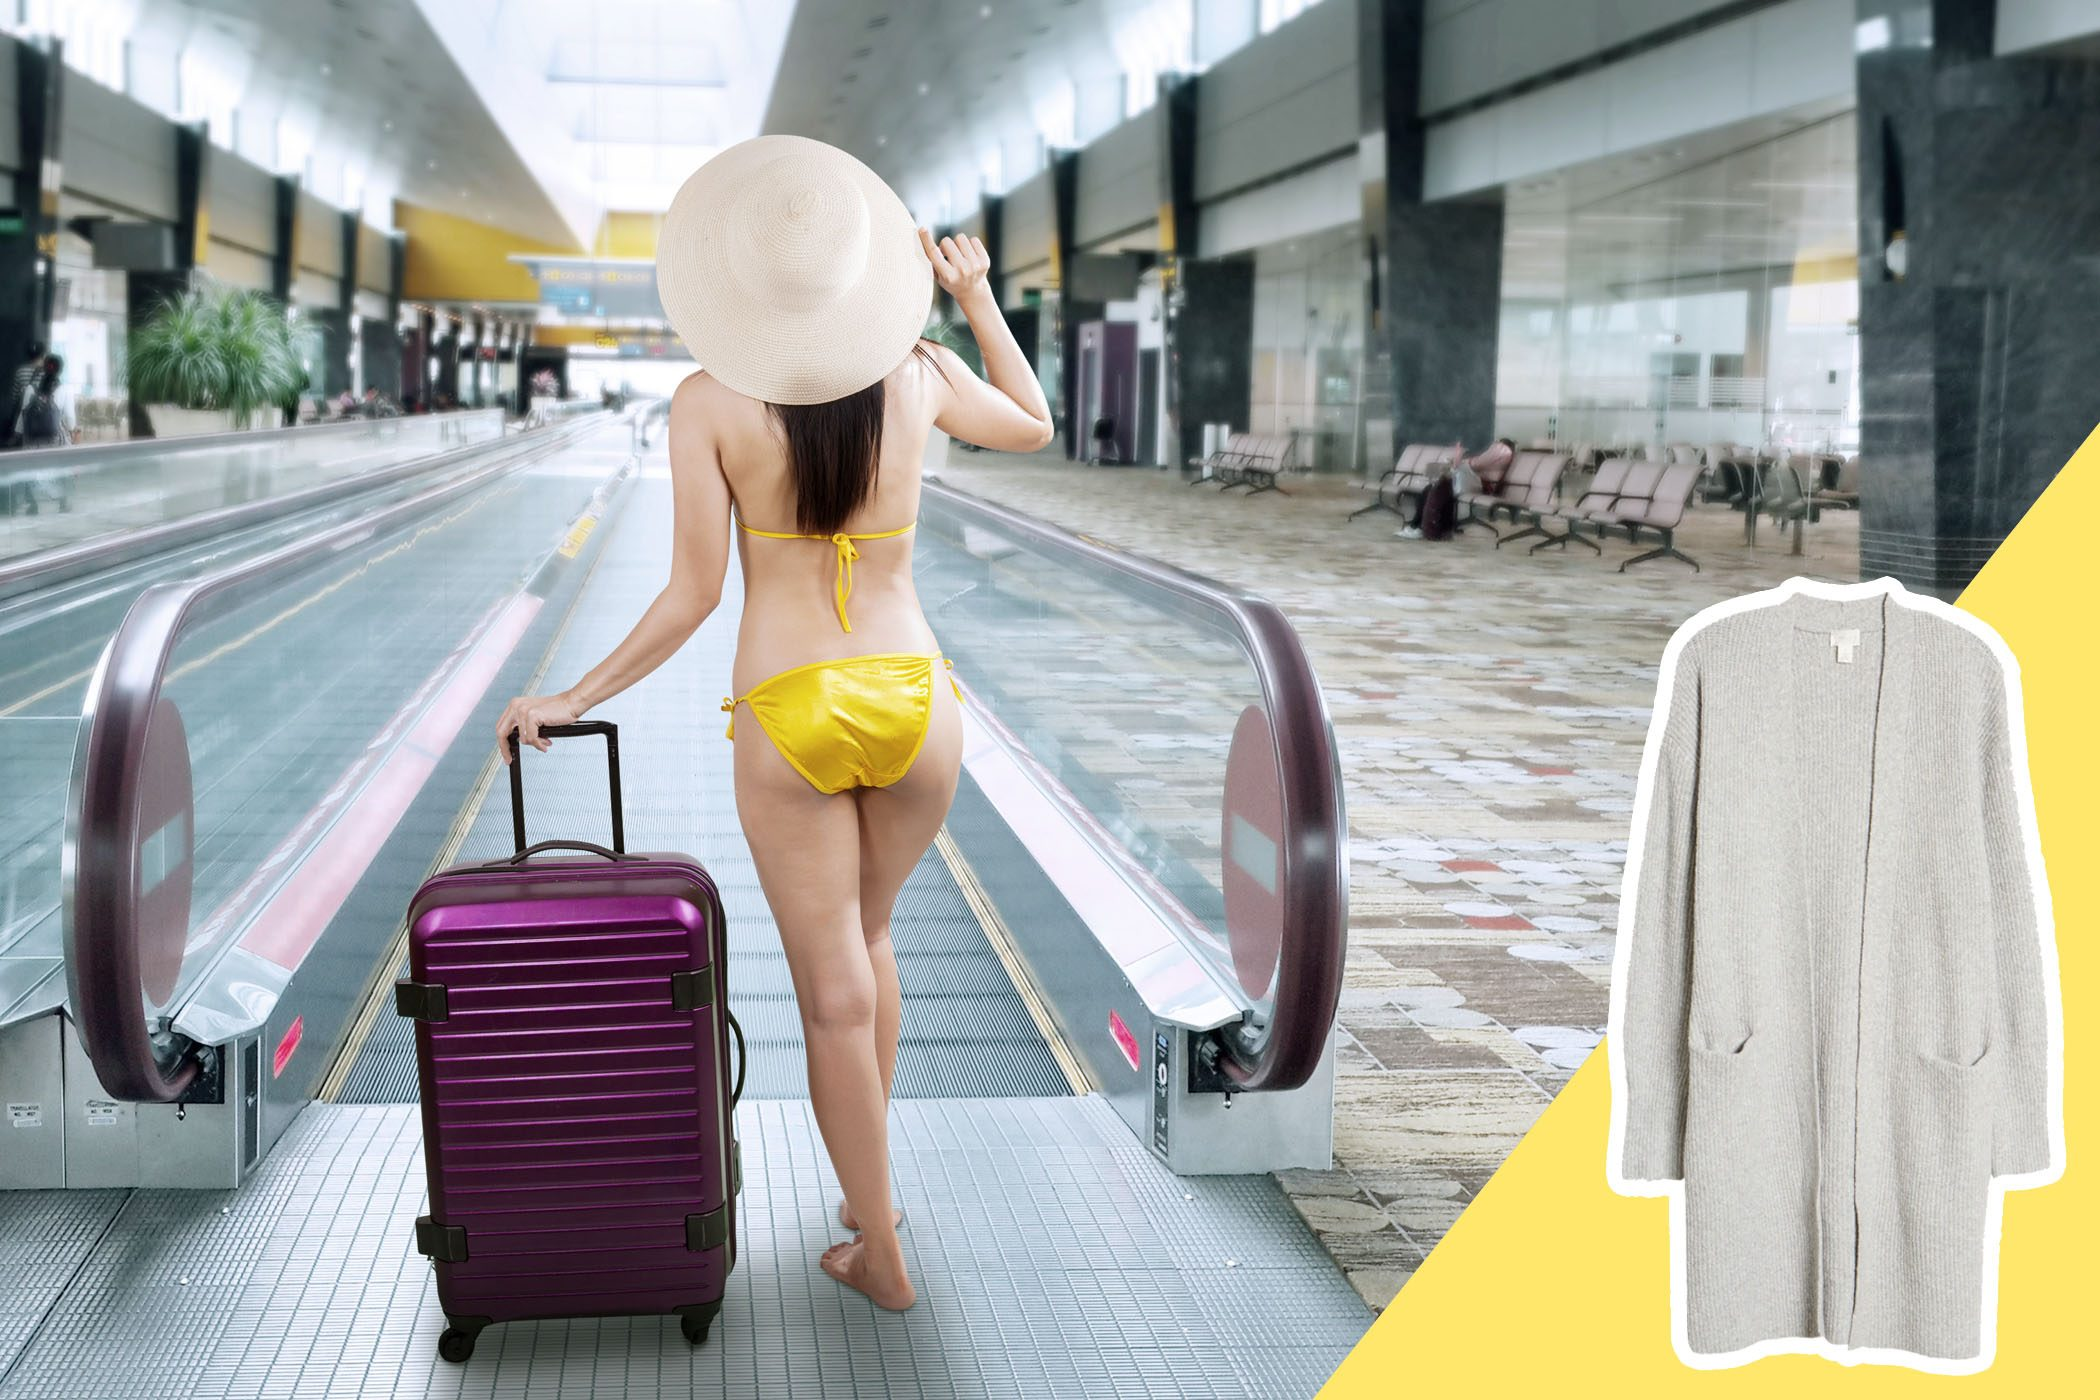 Woman wearing bathing suit in an airport with inset of cardigan to buy